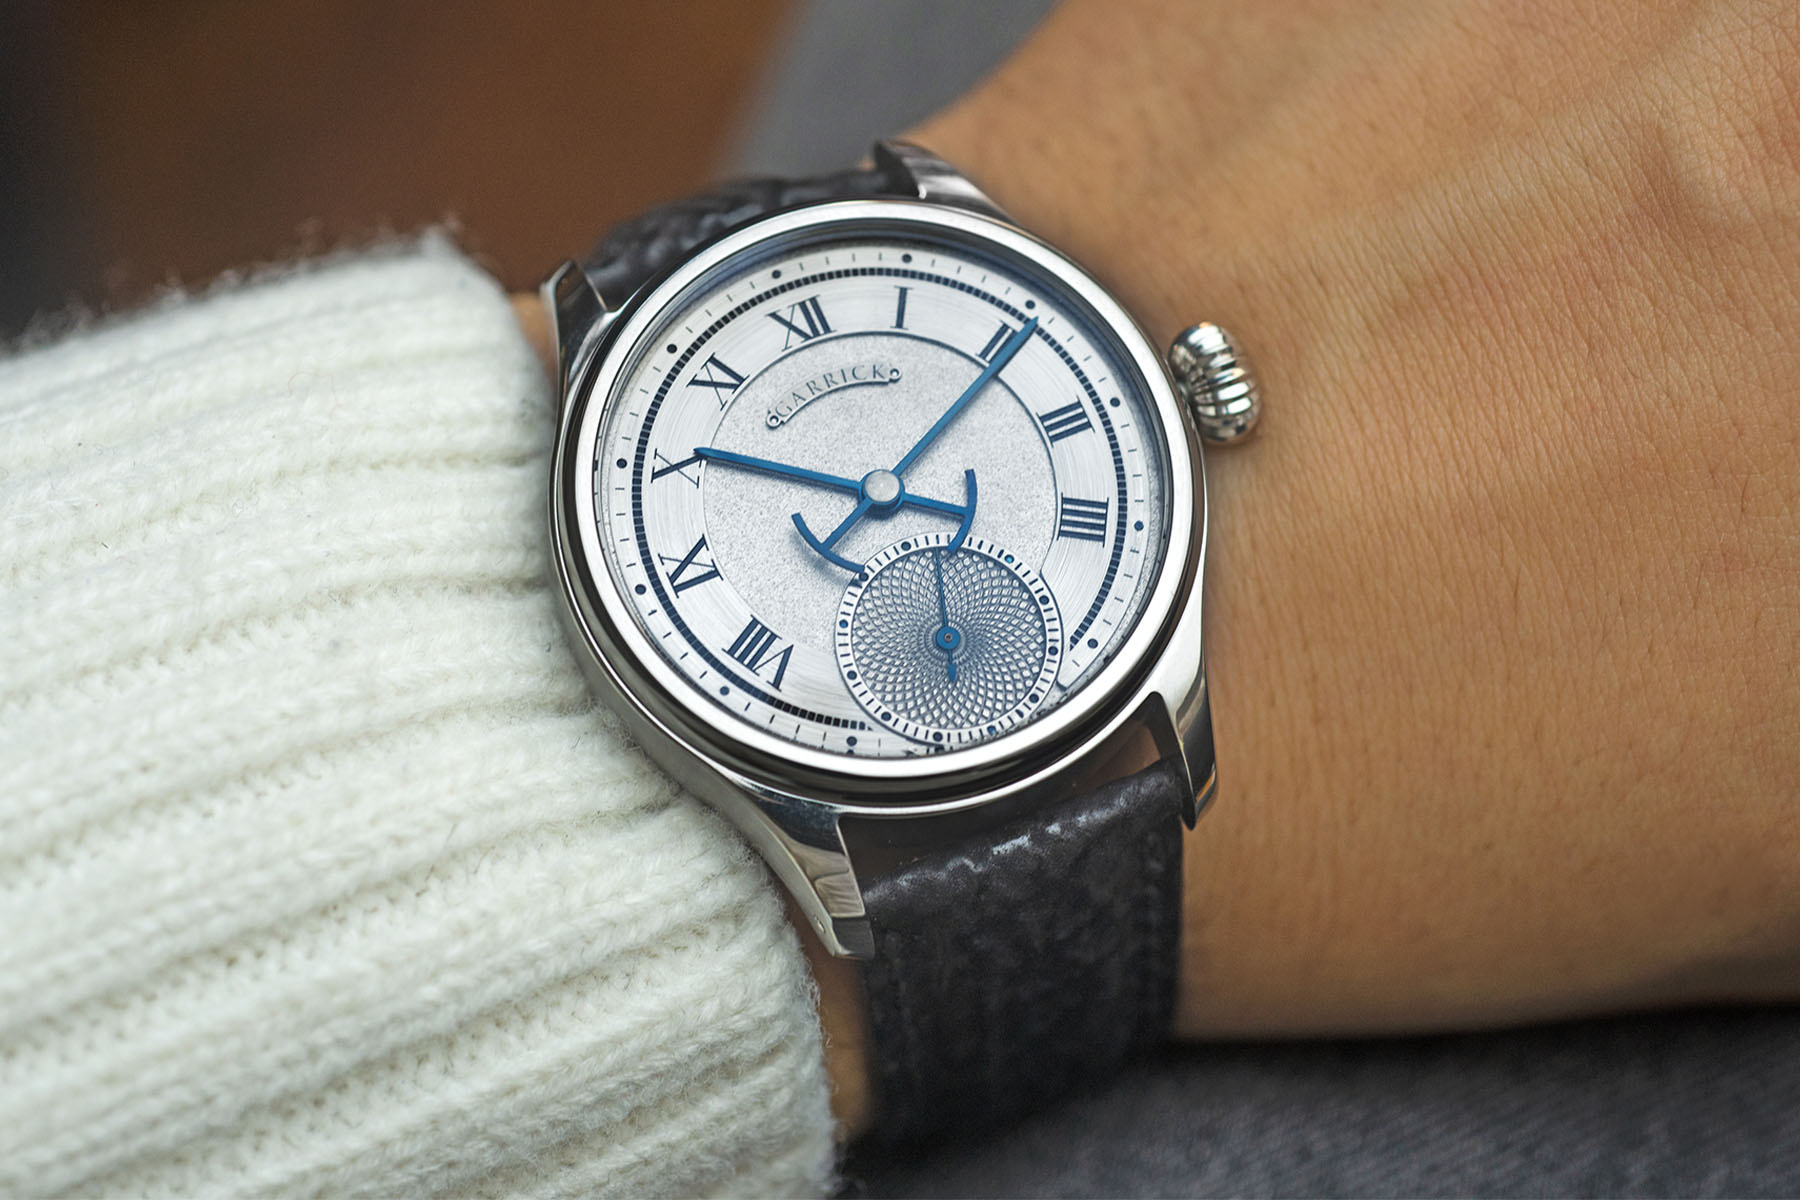 Garrick S4 watch - Independent Watchmaking England